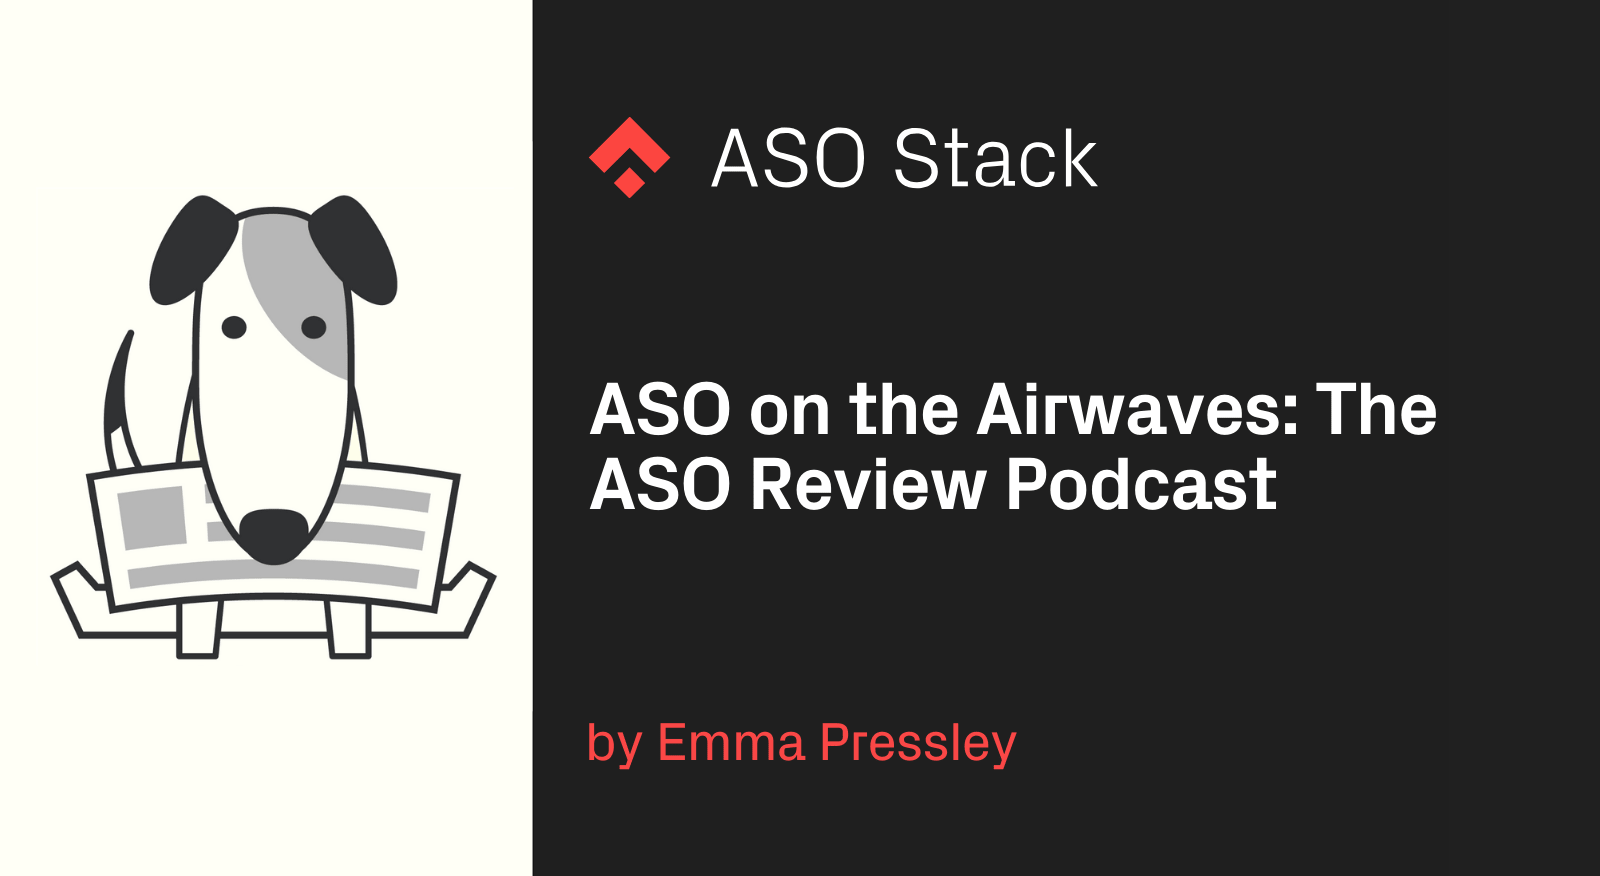 ASO on the Airwaves- The ASO Review Podcast